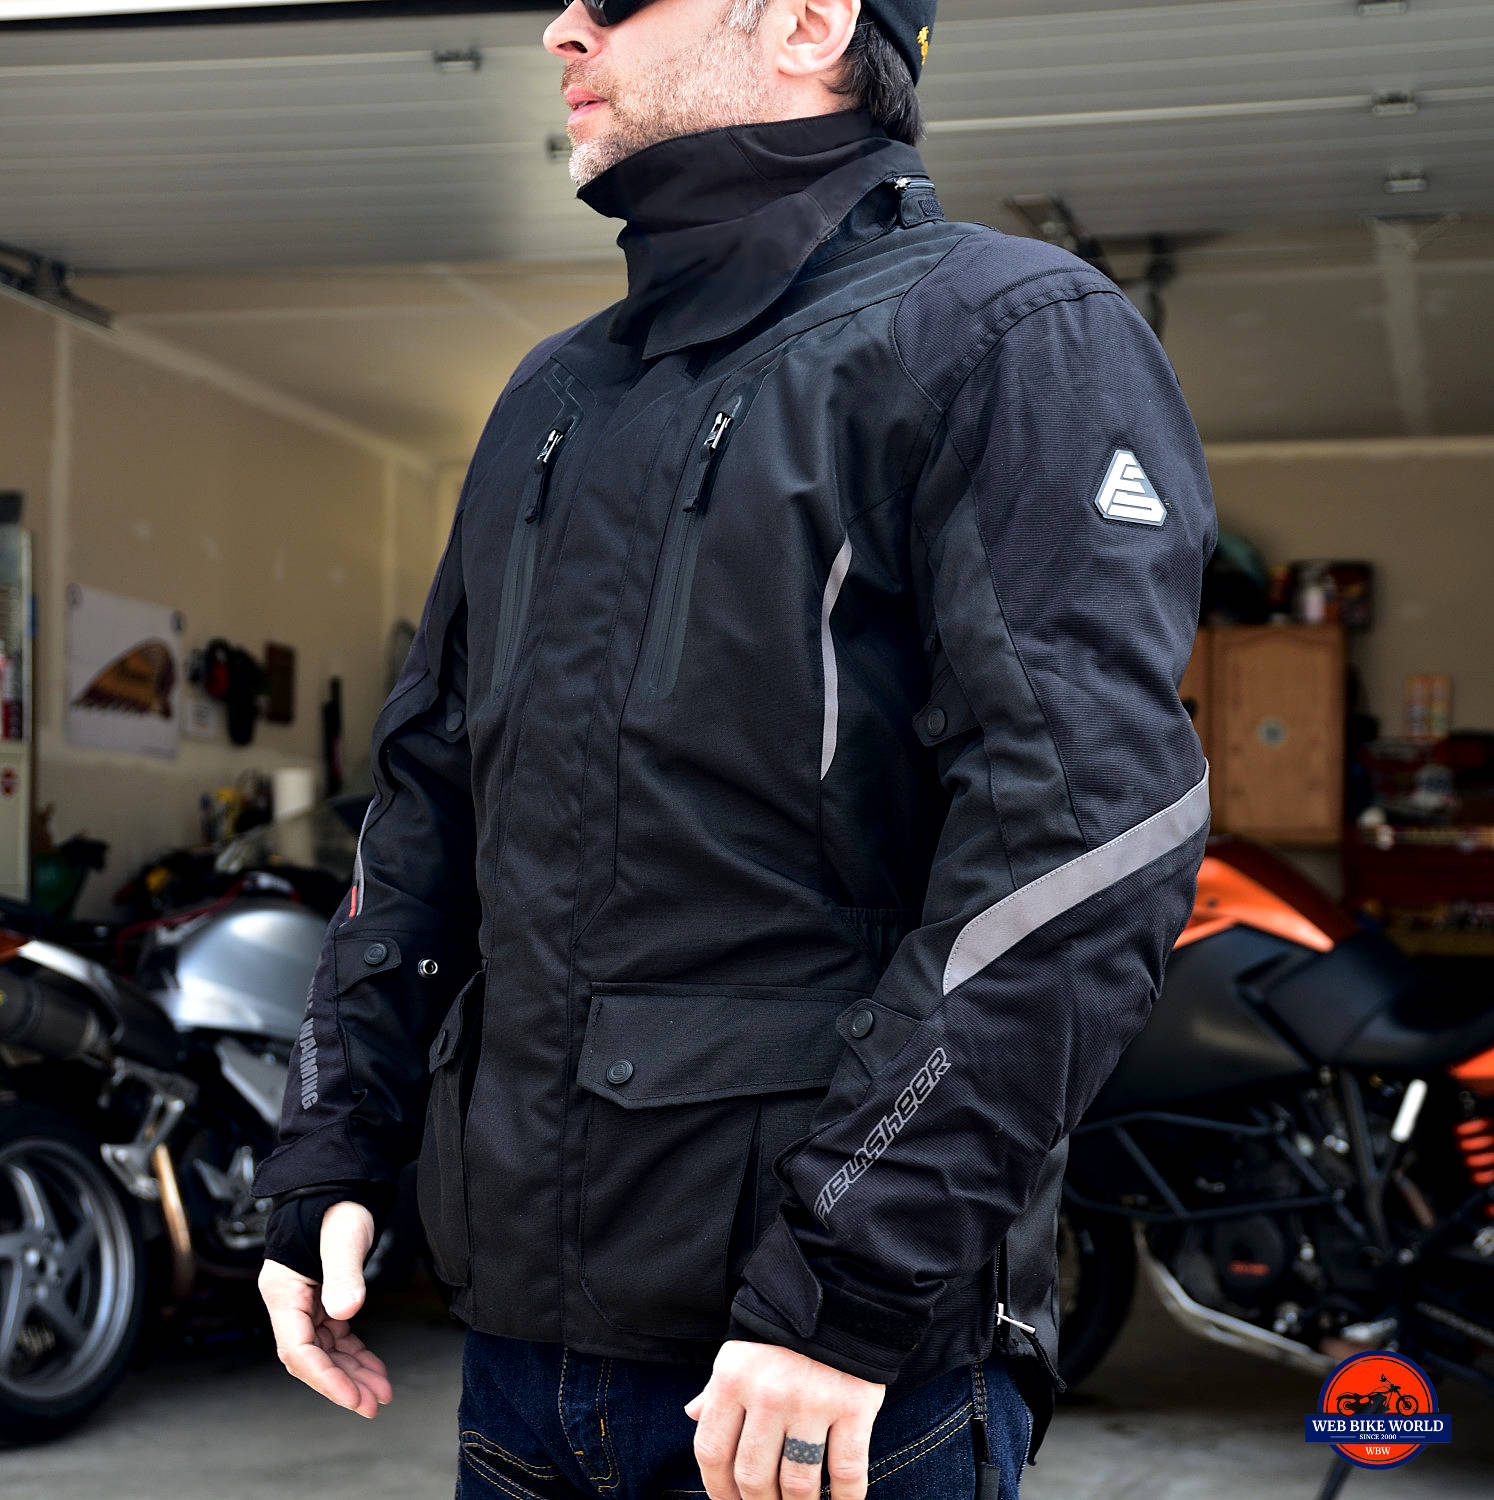 Fieldsheer Hydro Heat Textile Jacket Side View On Model